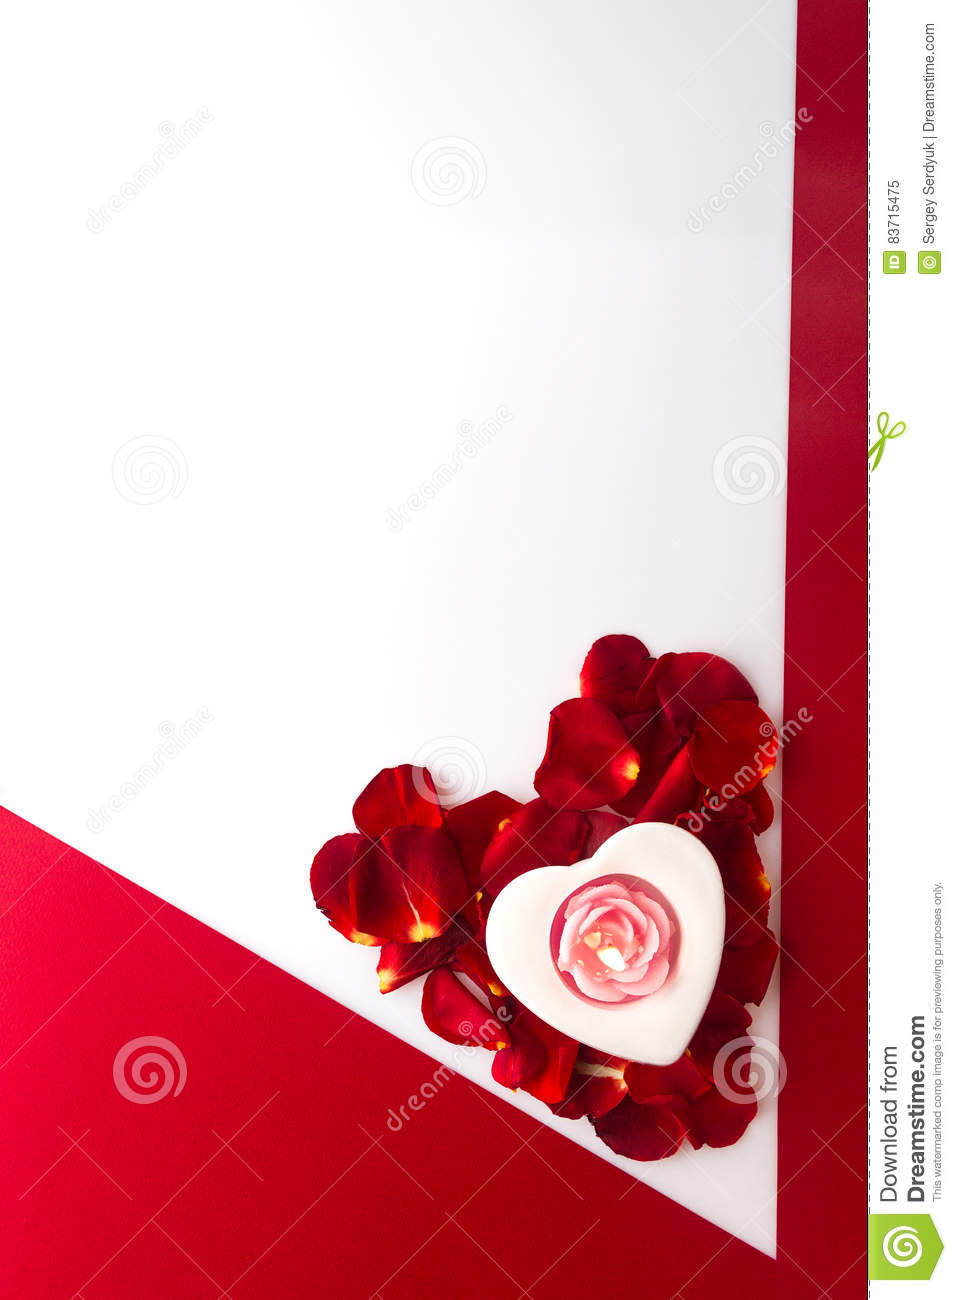 Candle Heart On The Heart Of Rose Petals Corner Red White Backgr Stock Photo